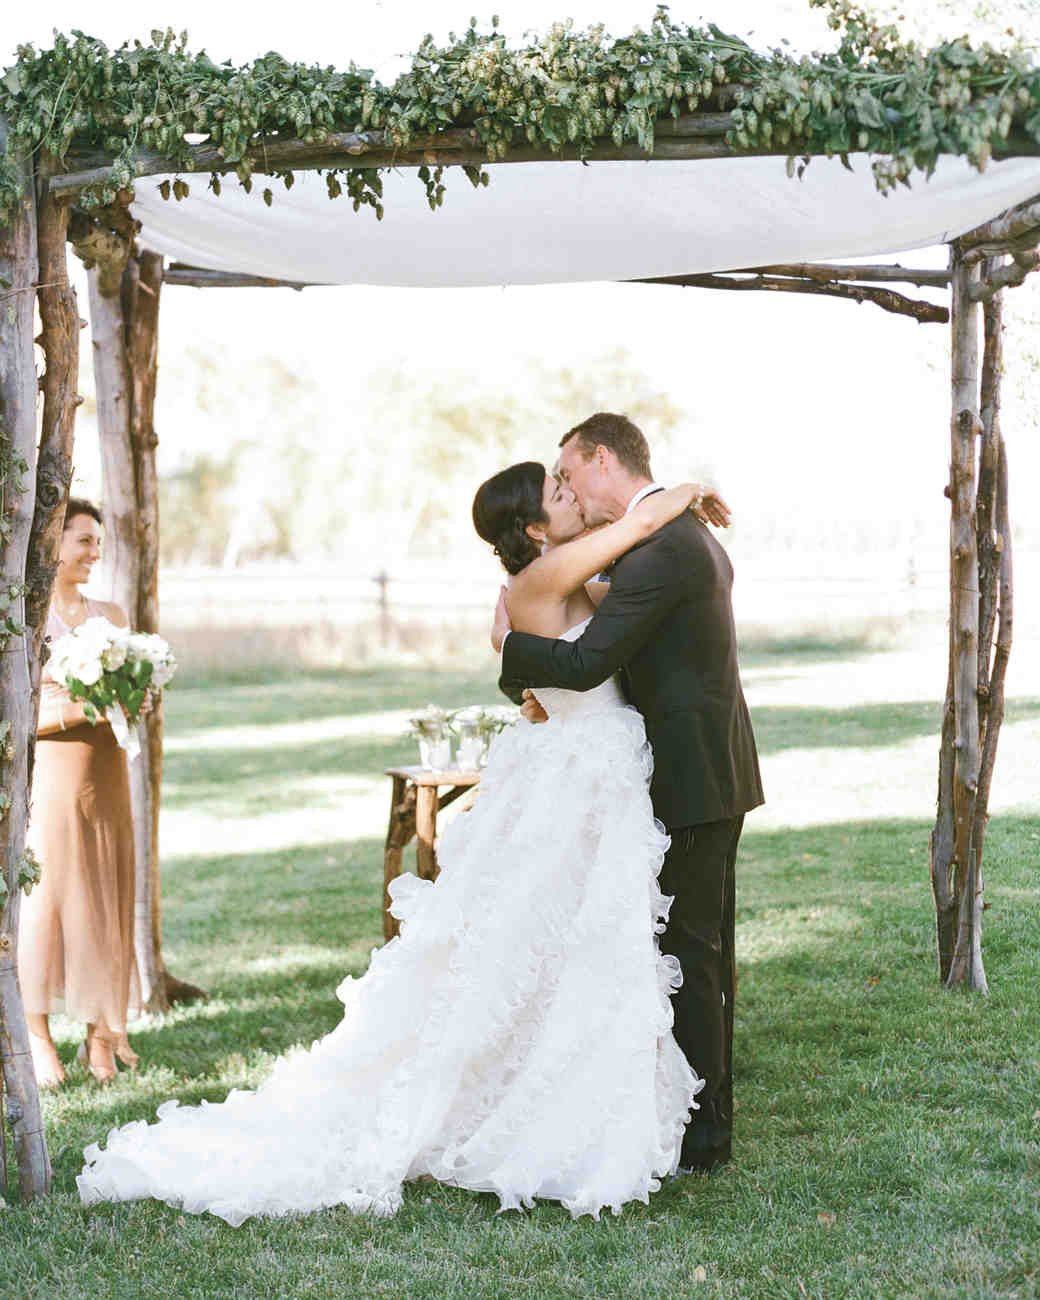 & 51 Beautiful Chuppahs from Jewish Weddings | Martha Stewart Weddings